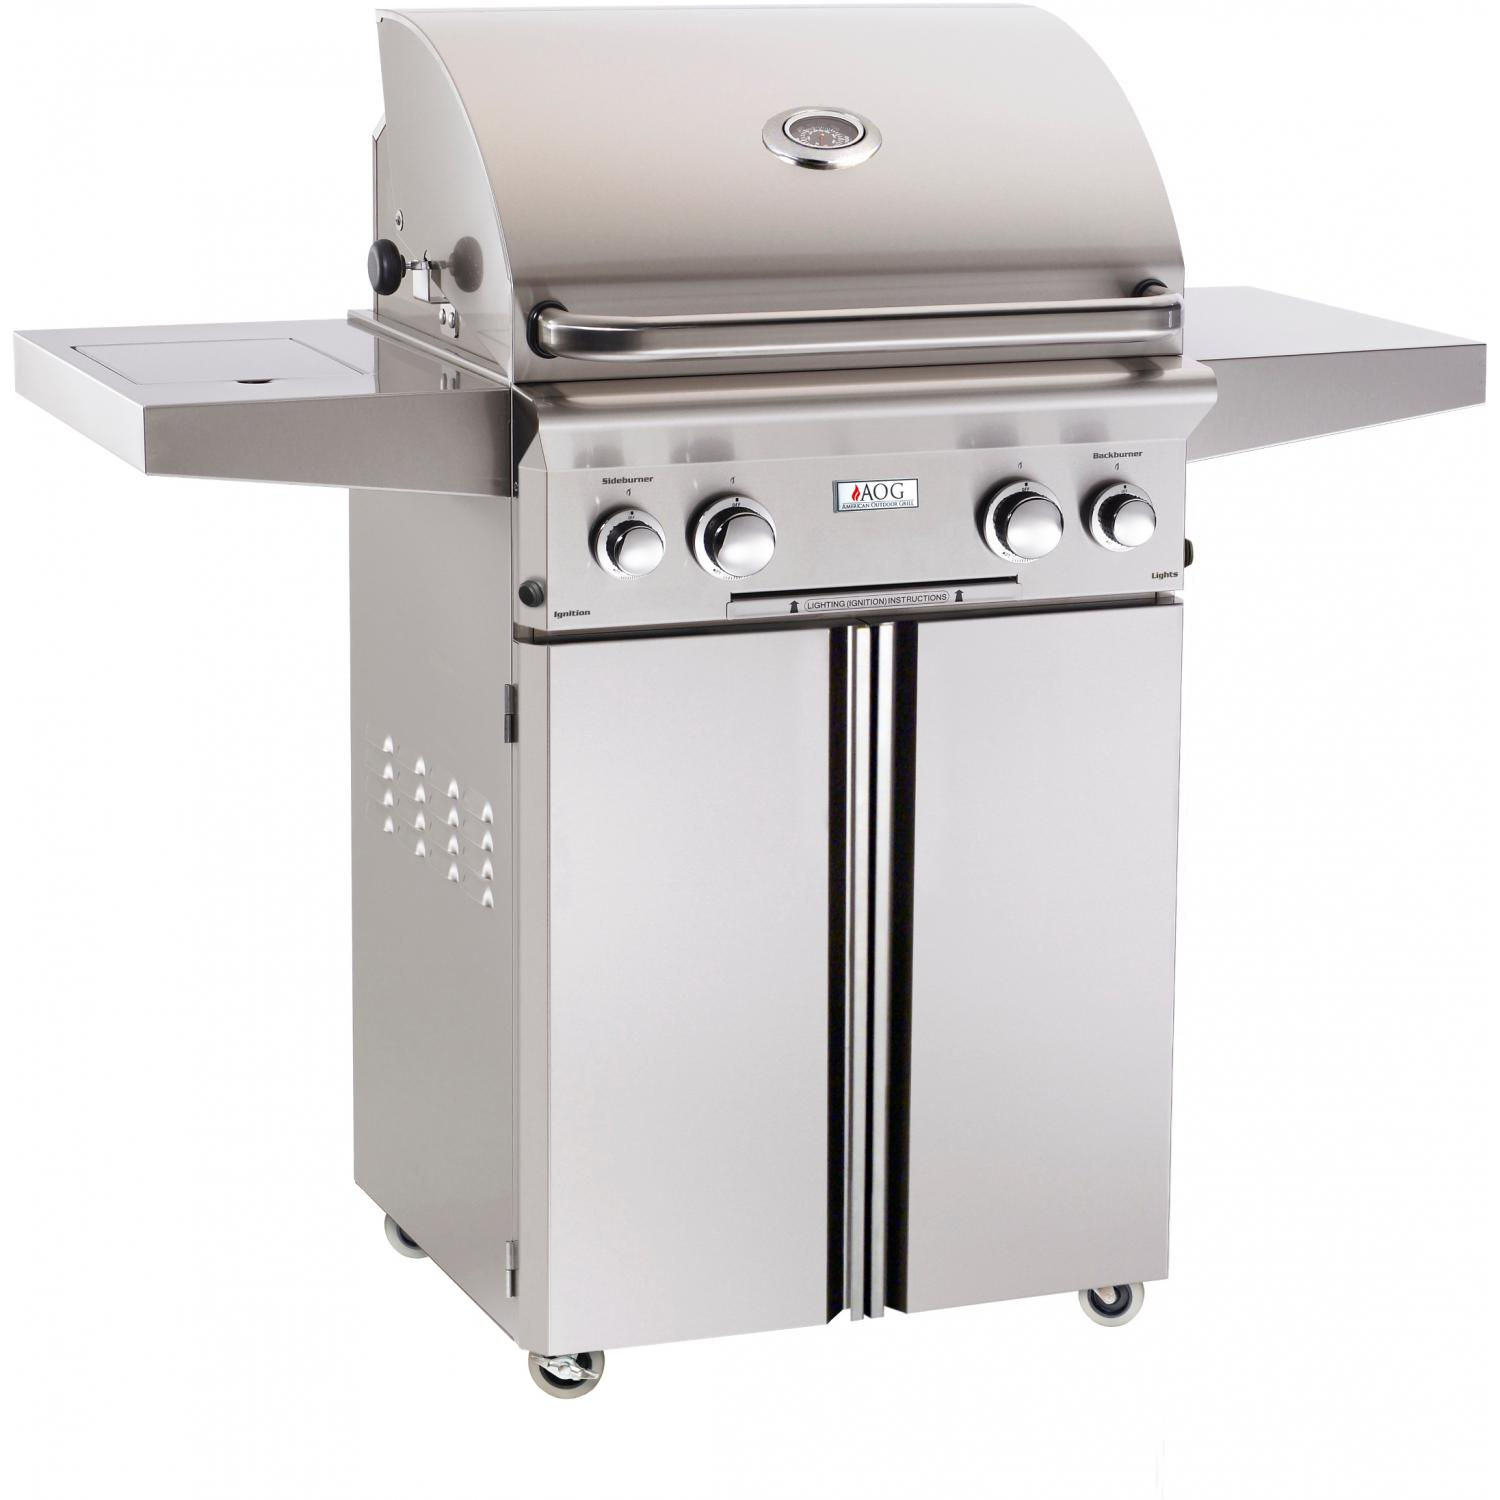 American Outdoor Grill L-Series 24-Inch Propane Gas Grill On Cart W/ Rotisserie & Side Burner 2894446